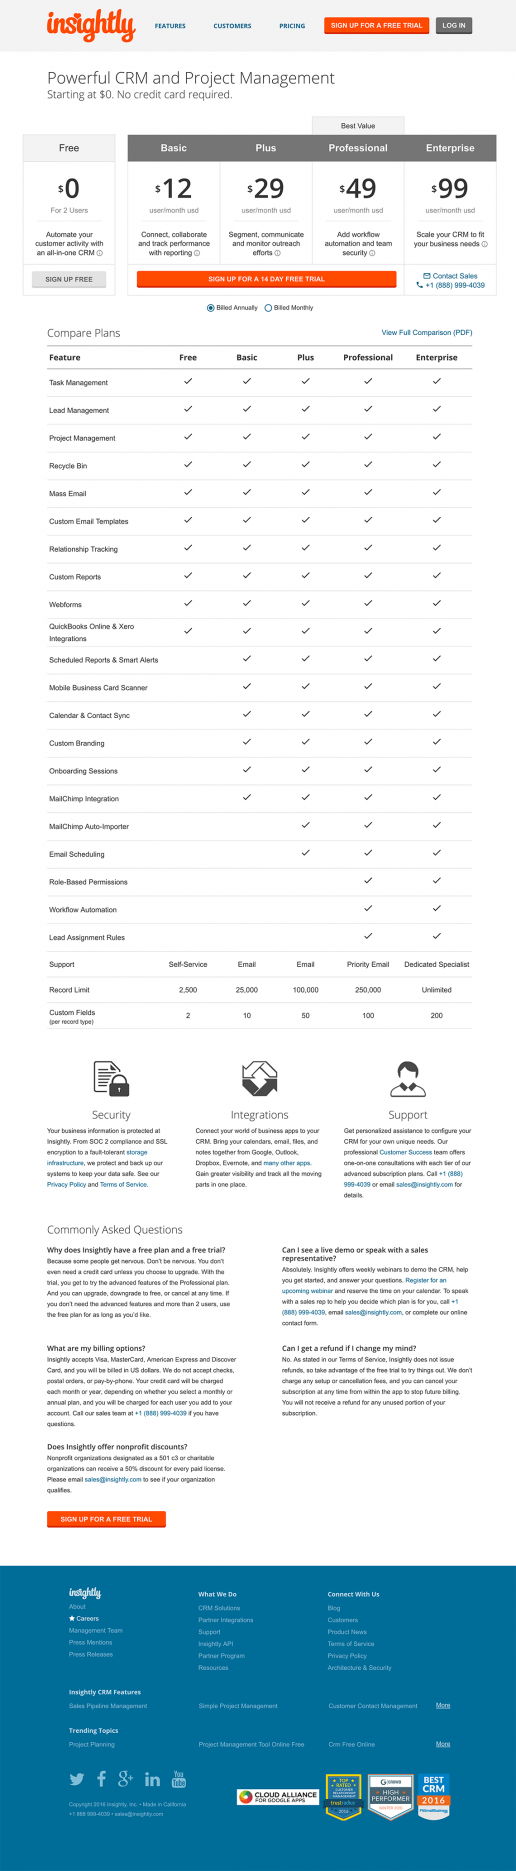 insightly-pricing-page-20-simplfied-design-and-organization